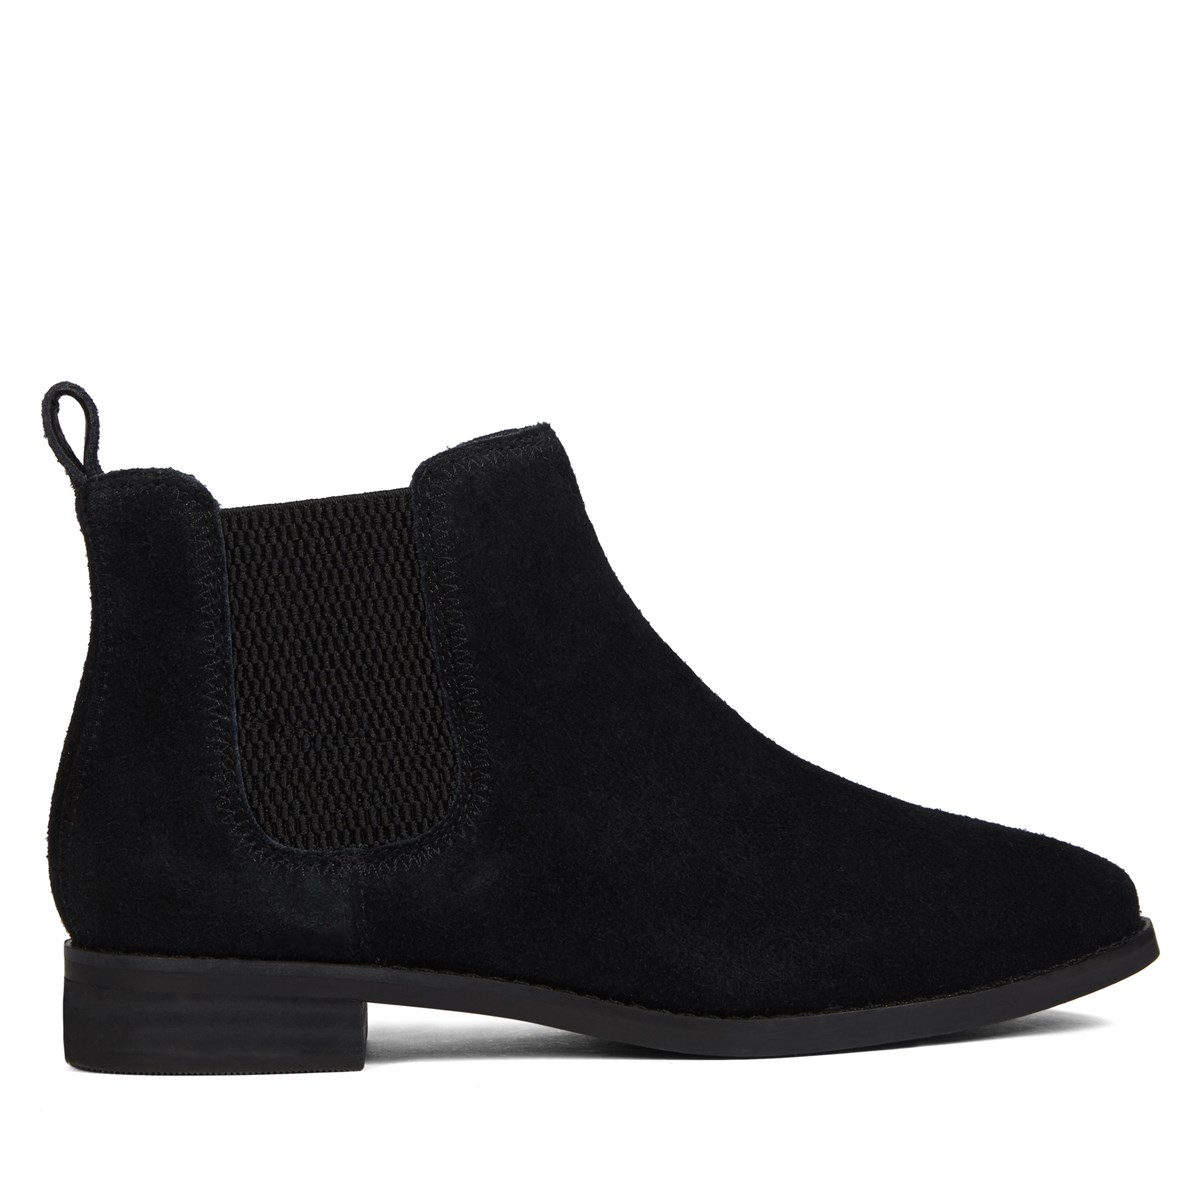 a6c0b18a5cdcb Women s Ella Black Suede Chelsea Boot. Previous. default view · ALT1 · ALT2